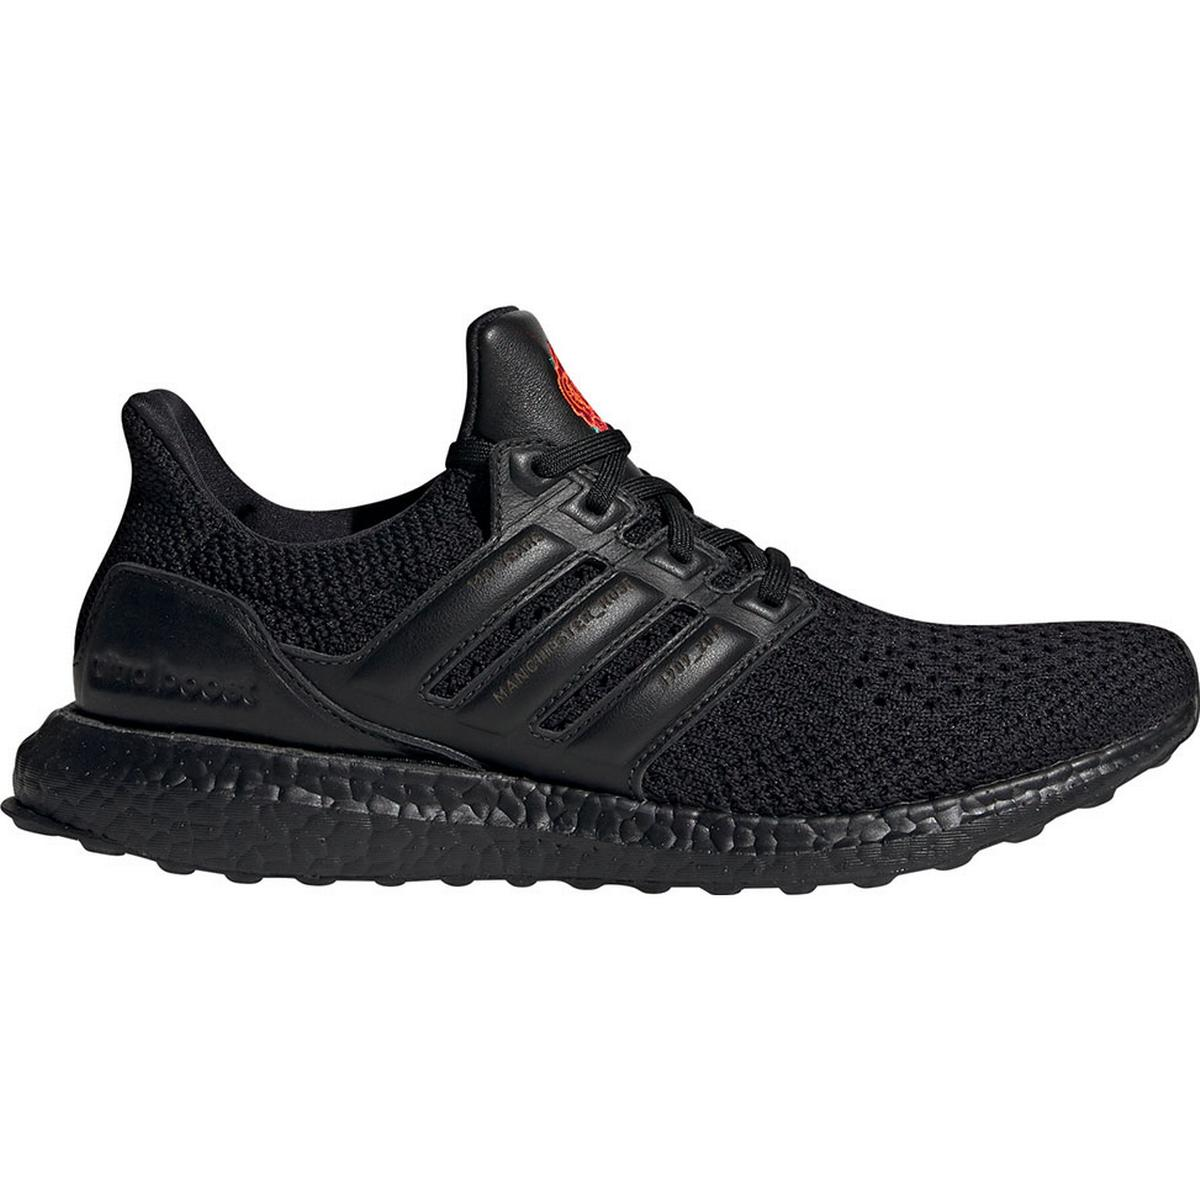 adidas Manchester United Ultraboost Clima Shoes | adidas